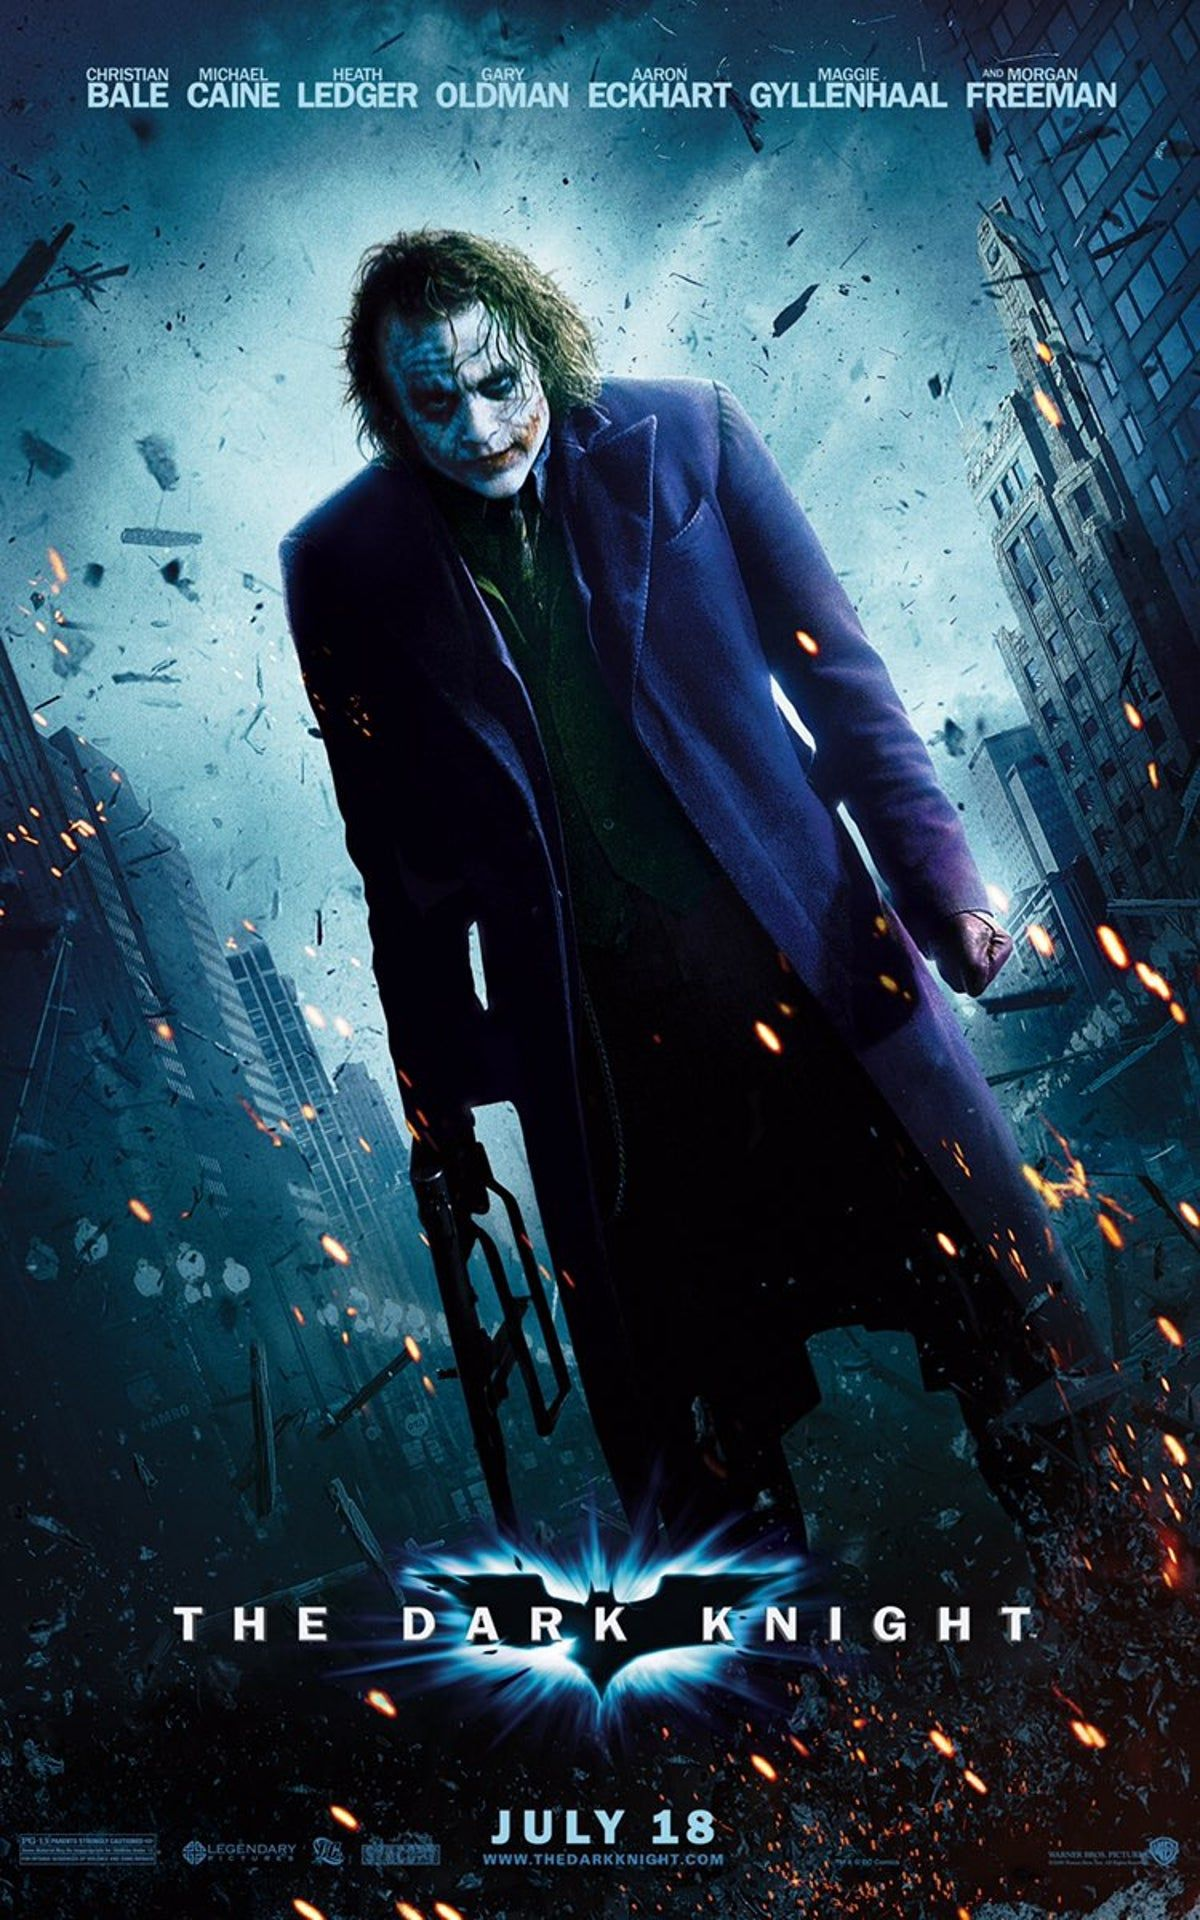 THE DARK KNIGHT Movie PHOTO Print POSTER Film 2008 Batman Joker Heath Ledger 003